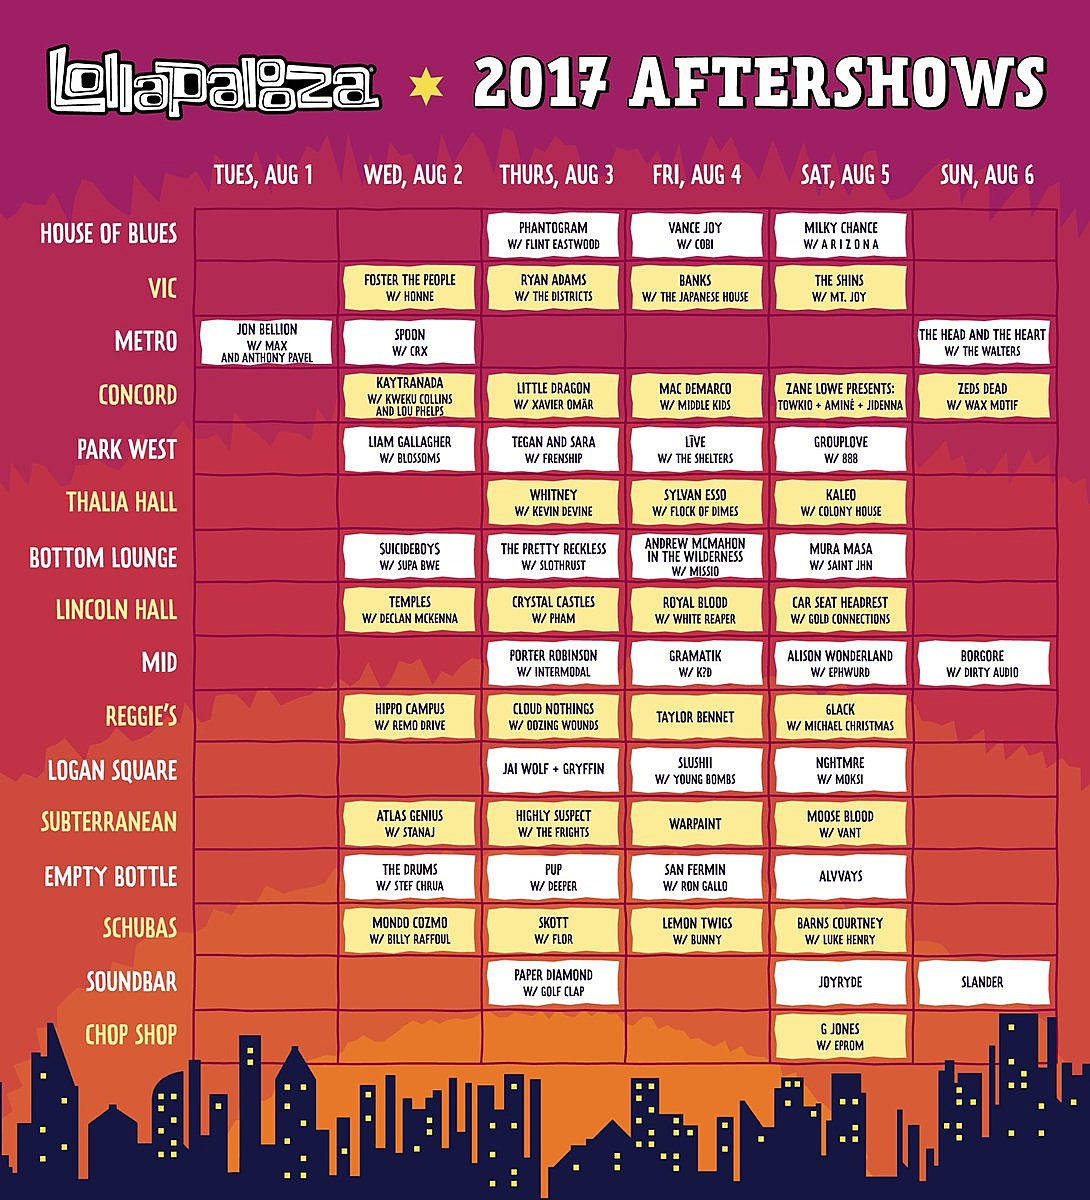 Lollapalooza 2017 Aftershows